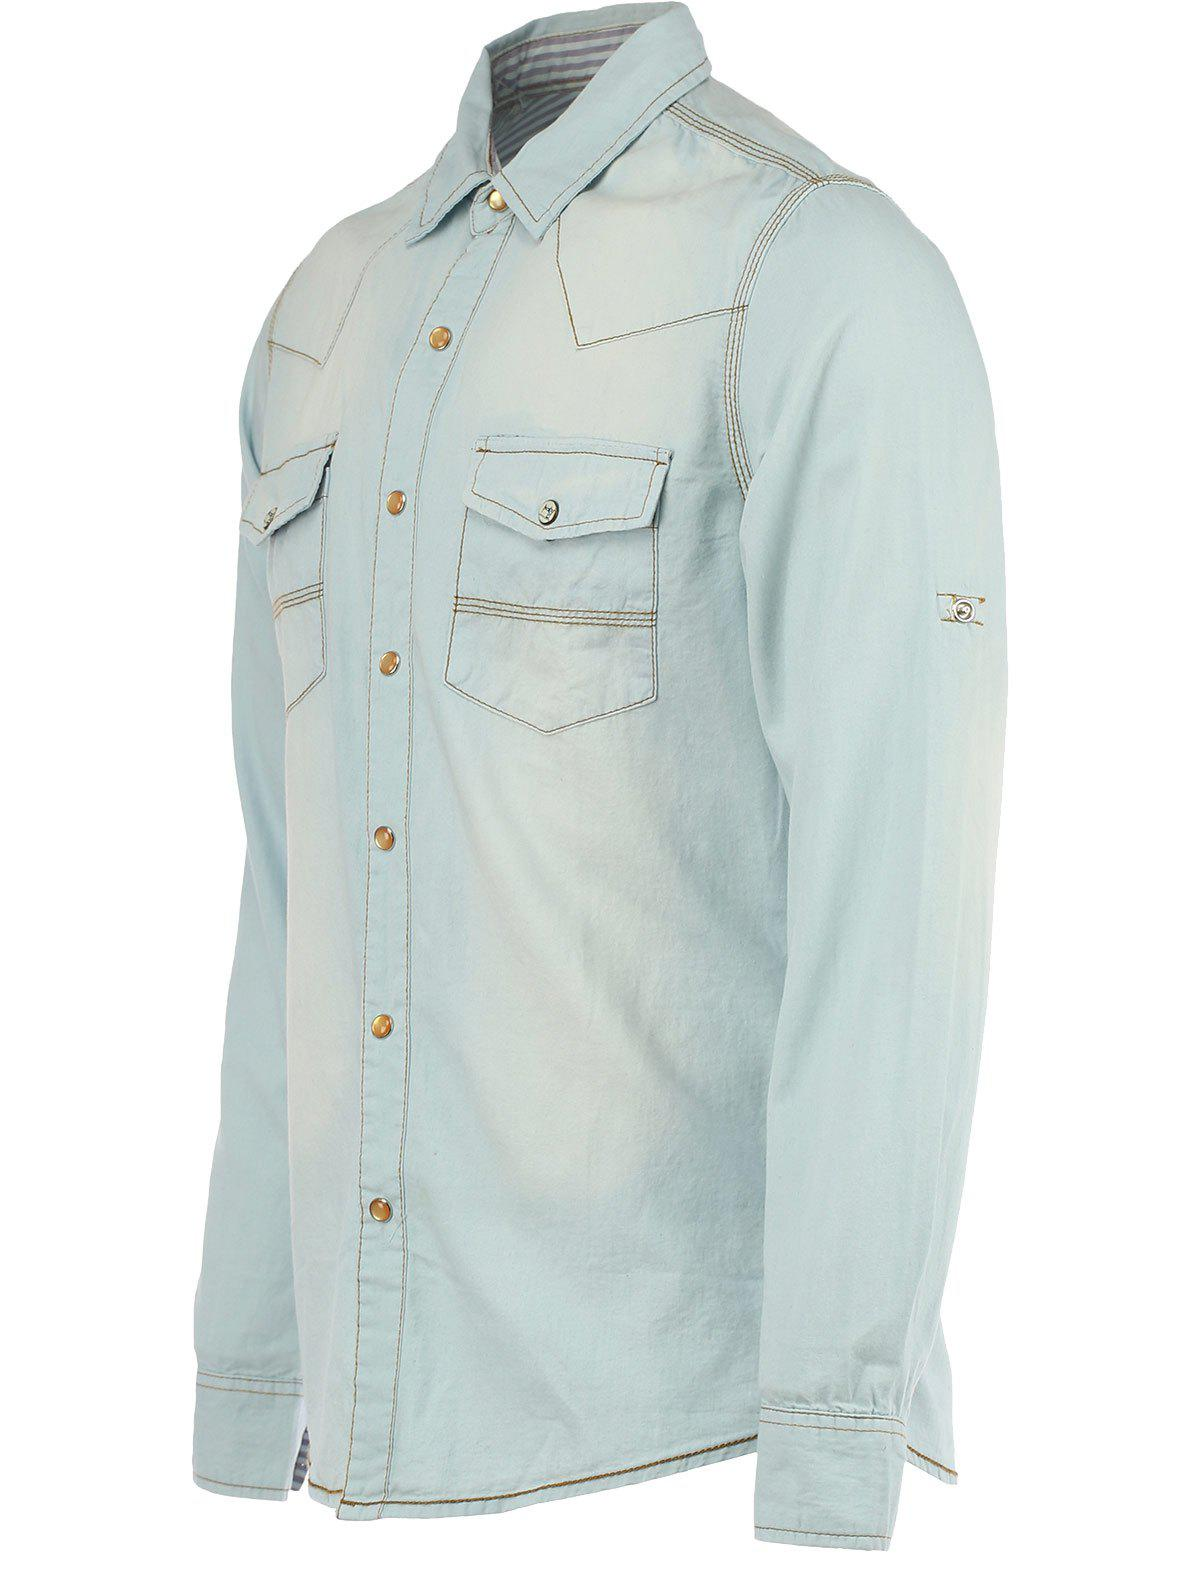 Bleach Wash Pockets Long Sleeve Denim Shirt - LIGHT BLUE M